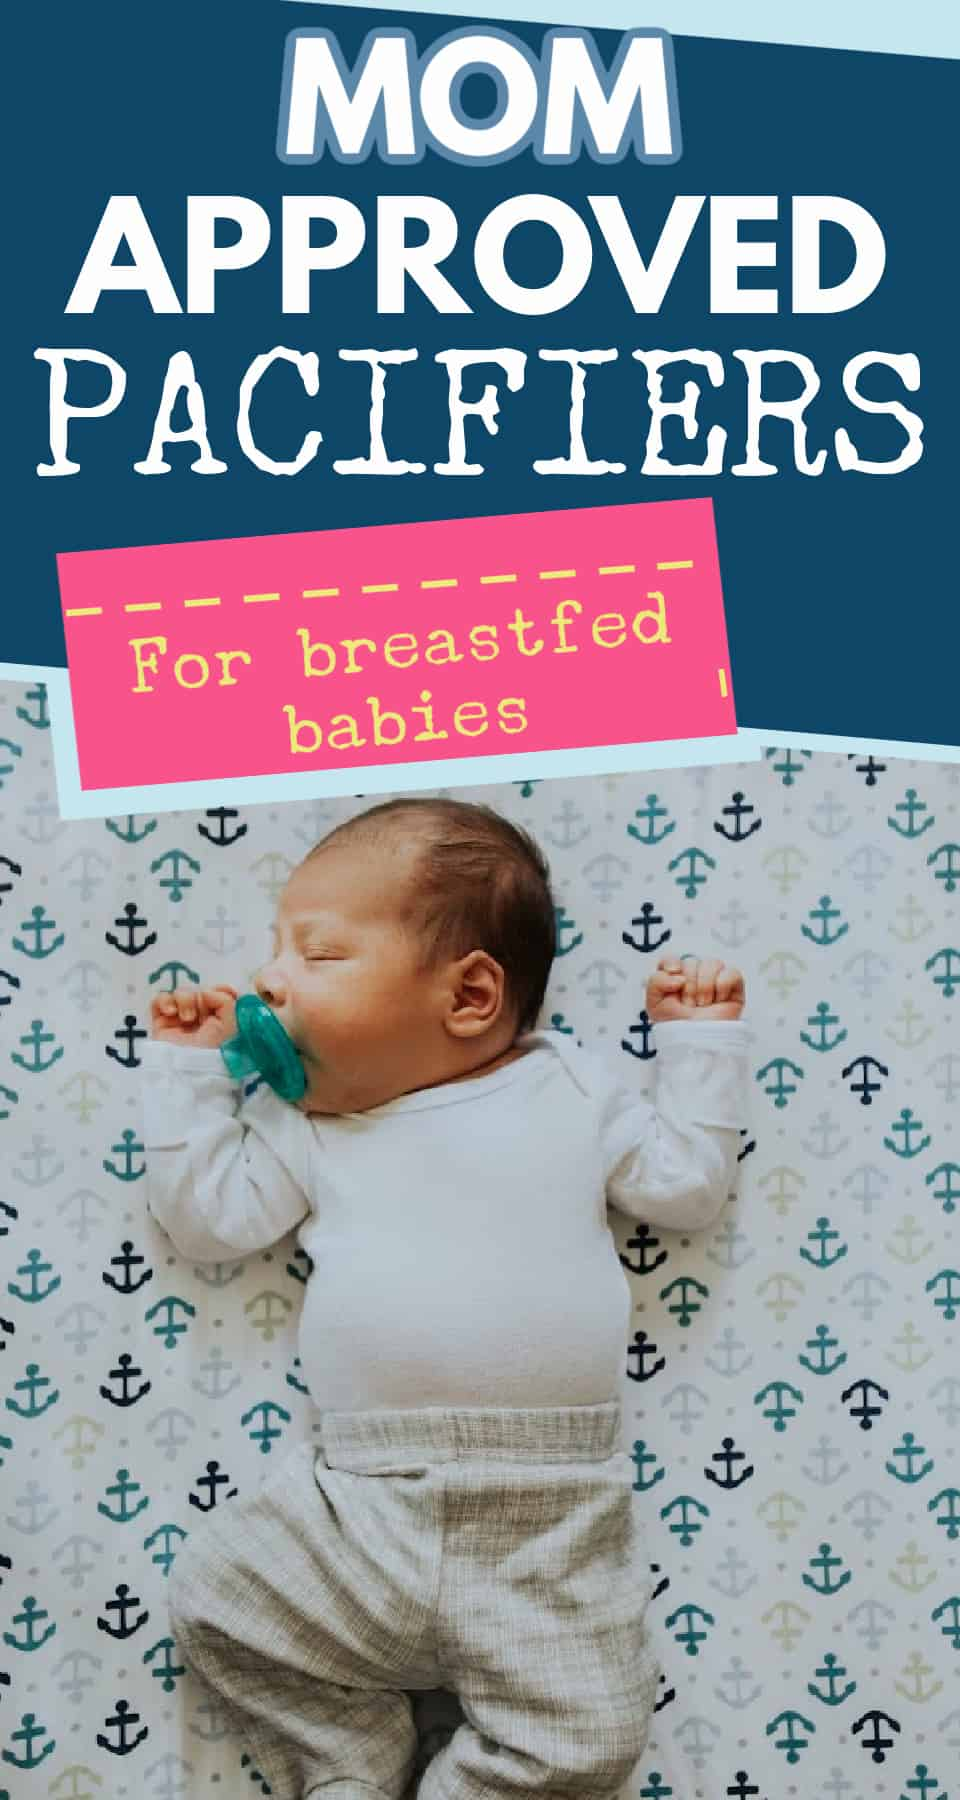 Not sure what is the best pacifier for a breastfeeding baby? Here are the top choices from breastfeeding mothers to help you decide - these options tend to encourage breastfeeding while offering a great soothing option.